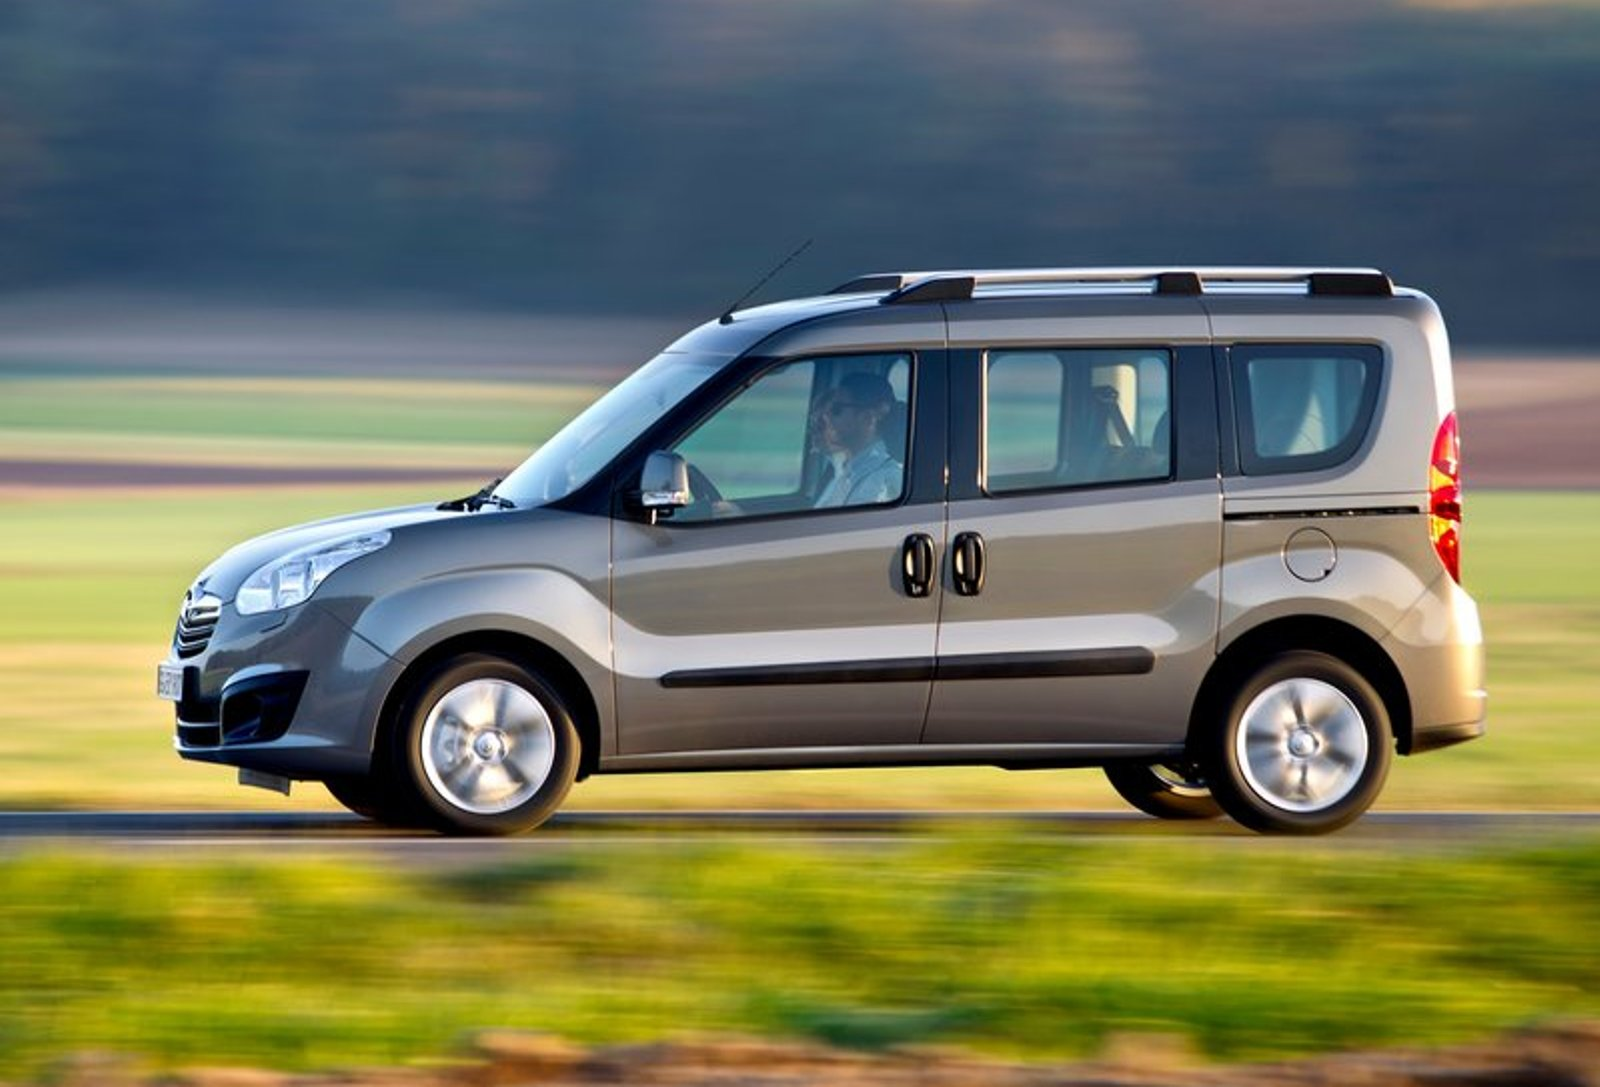 2012 Opel Combo Car Images #2414 Wallpaper | hdcarphotos.